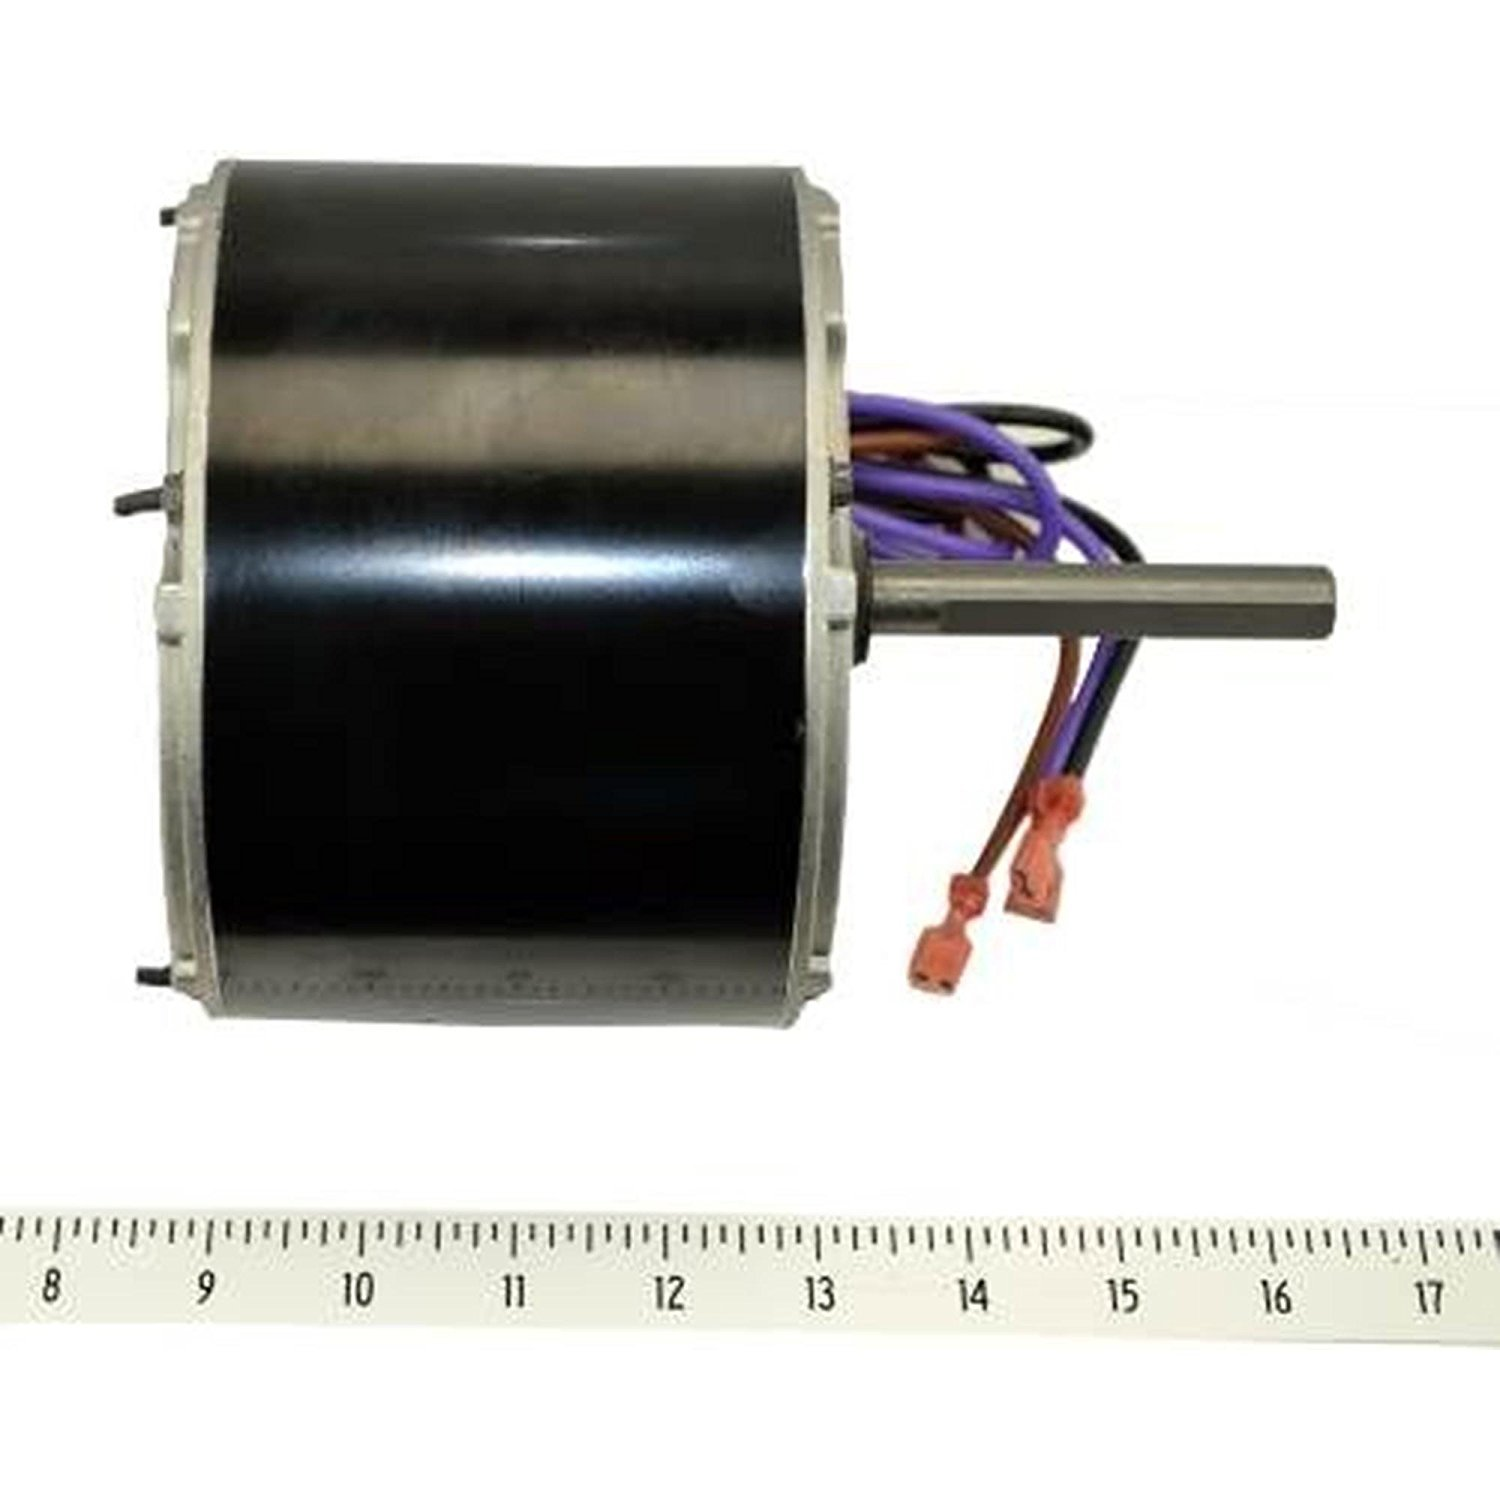 Amazon.com: Goodman 0131 m00009psp Motor condensador, 1/6 HP ...